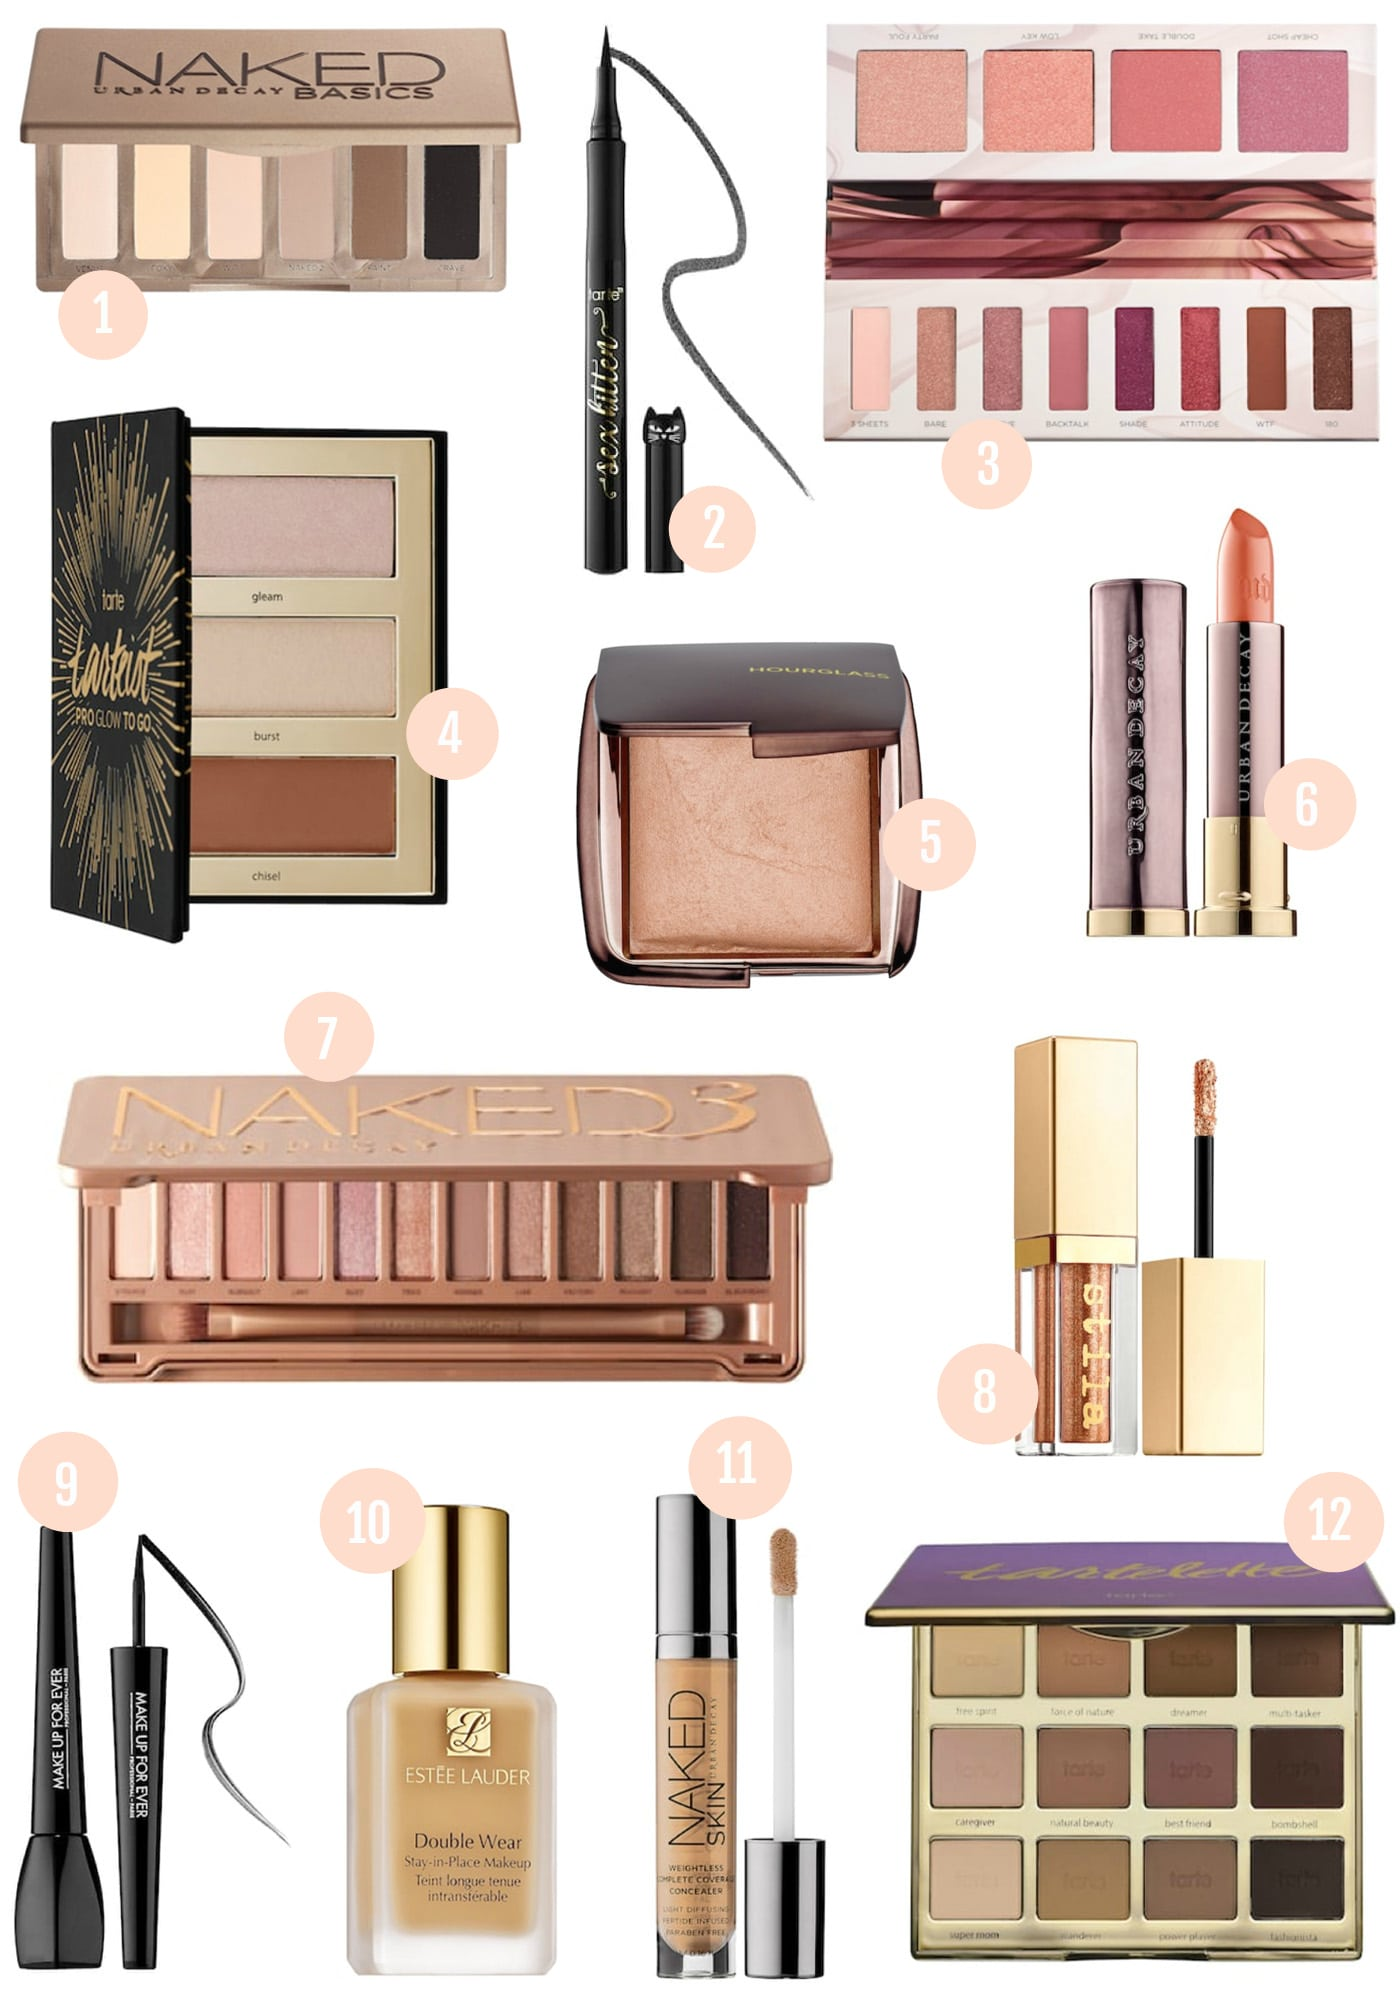 High end beauty products worth the splurge | beauty blush, foundation, highlighter, eyeshadow palettes | lipstick, eyeliner, concealer and blush | popular Orlando blogger Mash Elle | top makeup tips